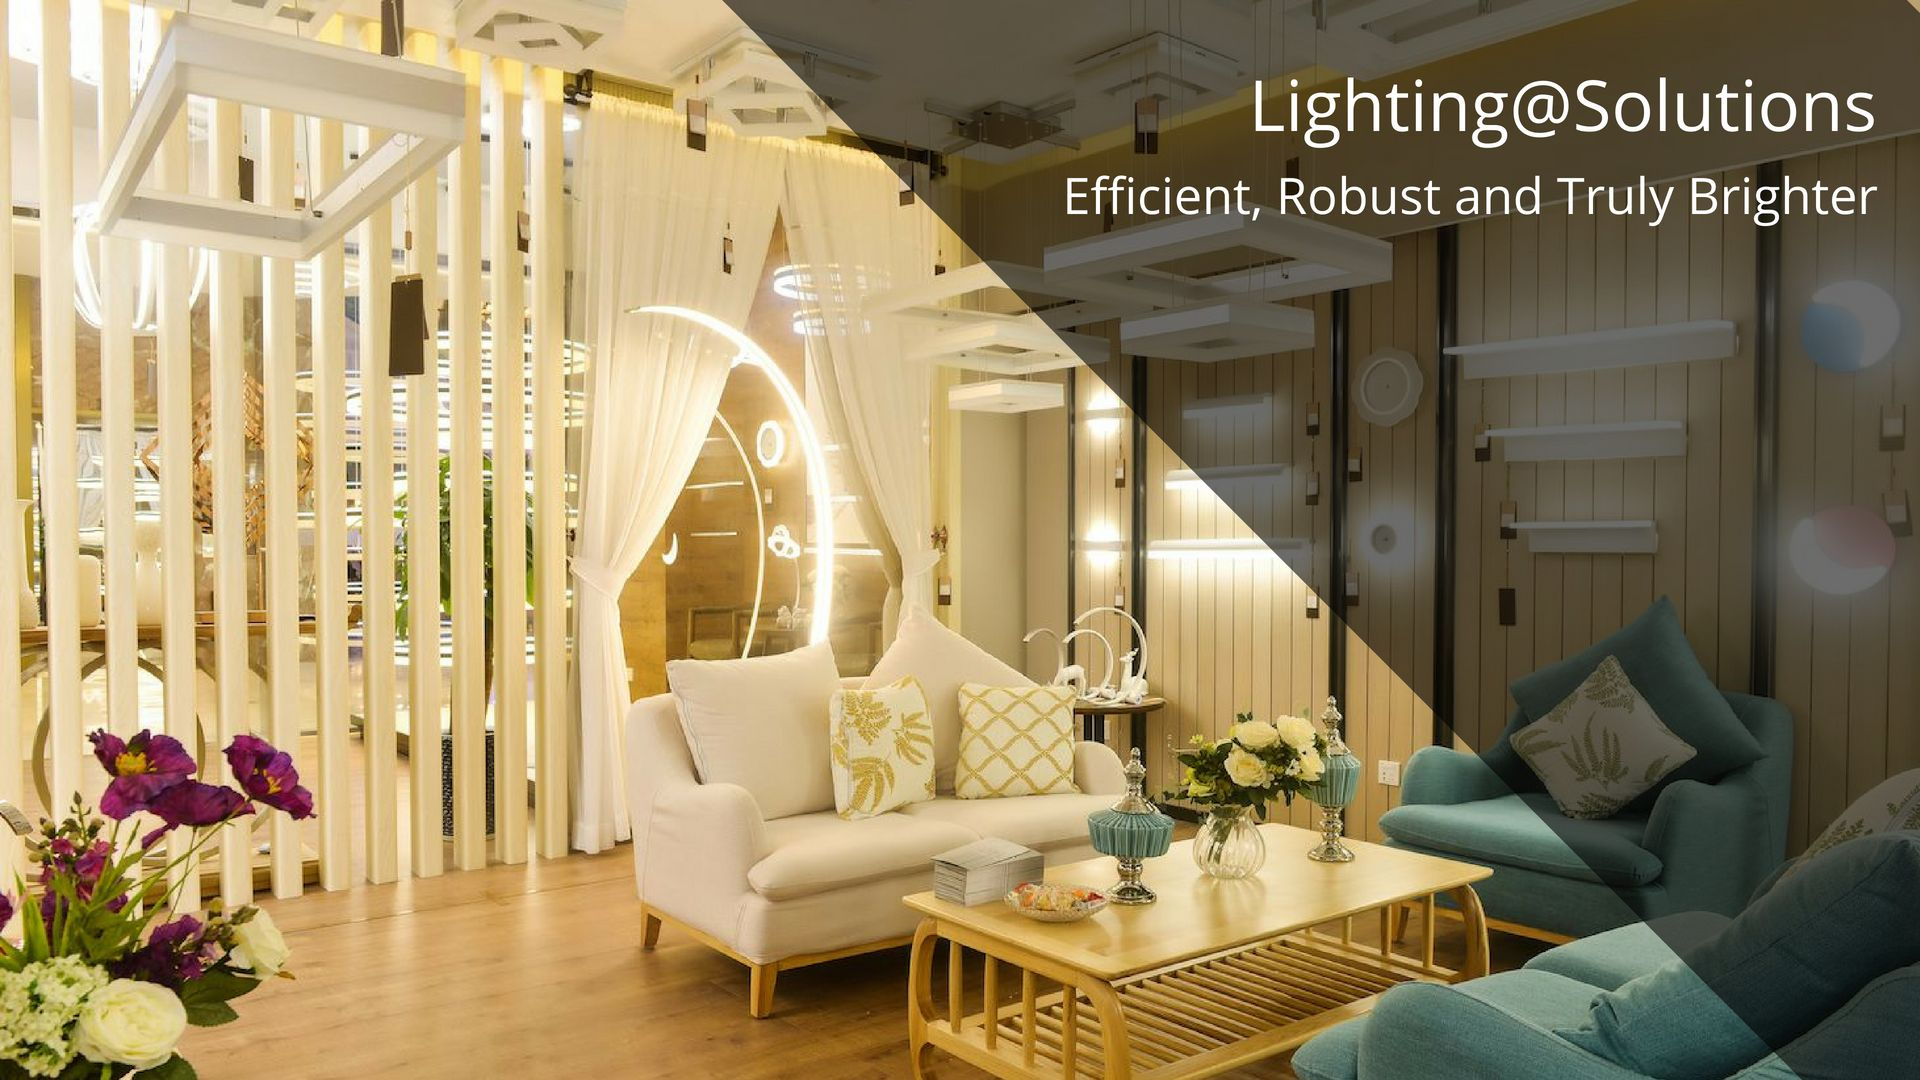 Lighting Solutions-by Swingtel